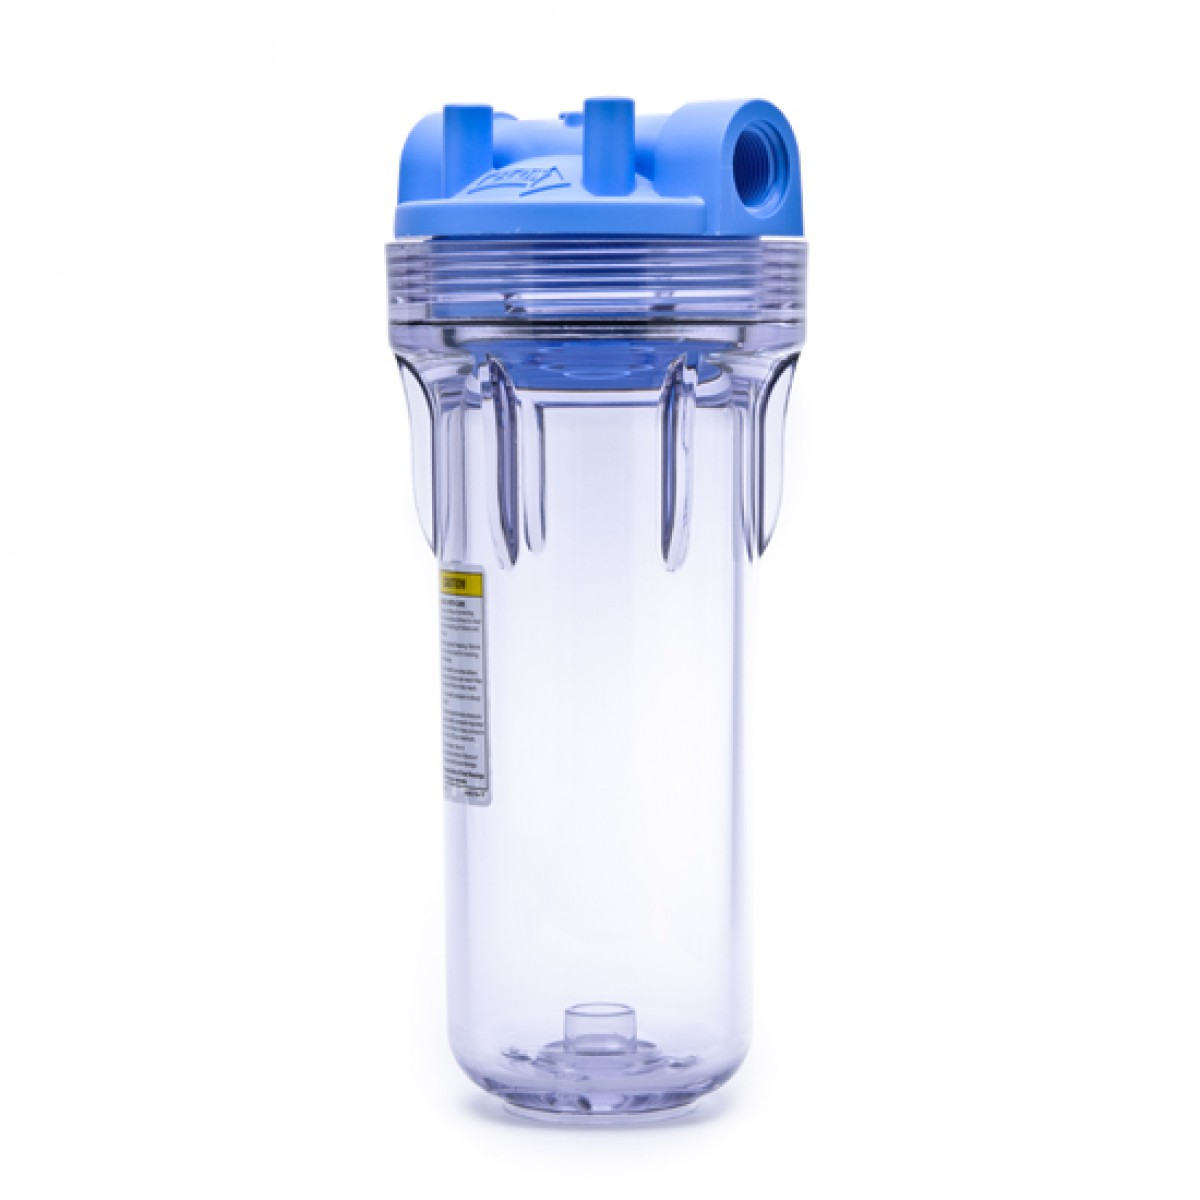 3g Standard Clear 34 Pr10 Pentek Filter Housing